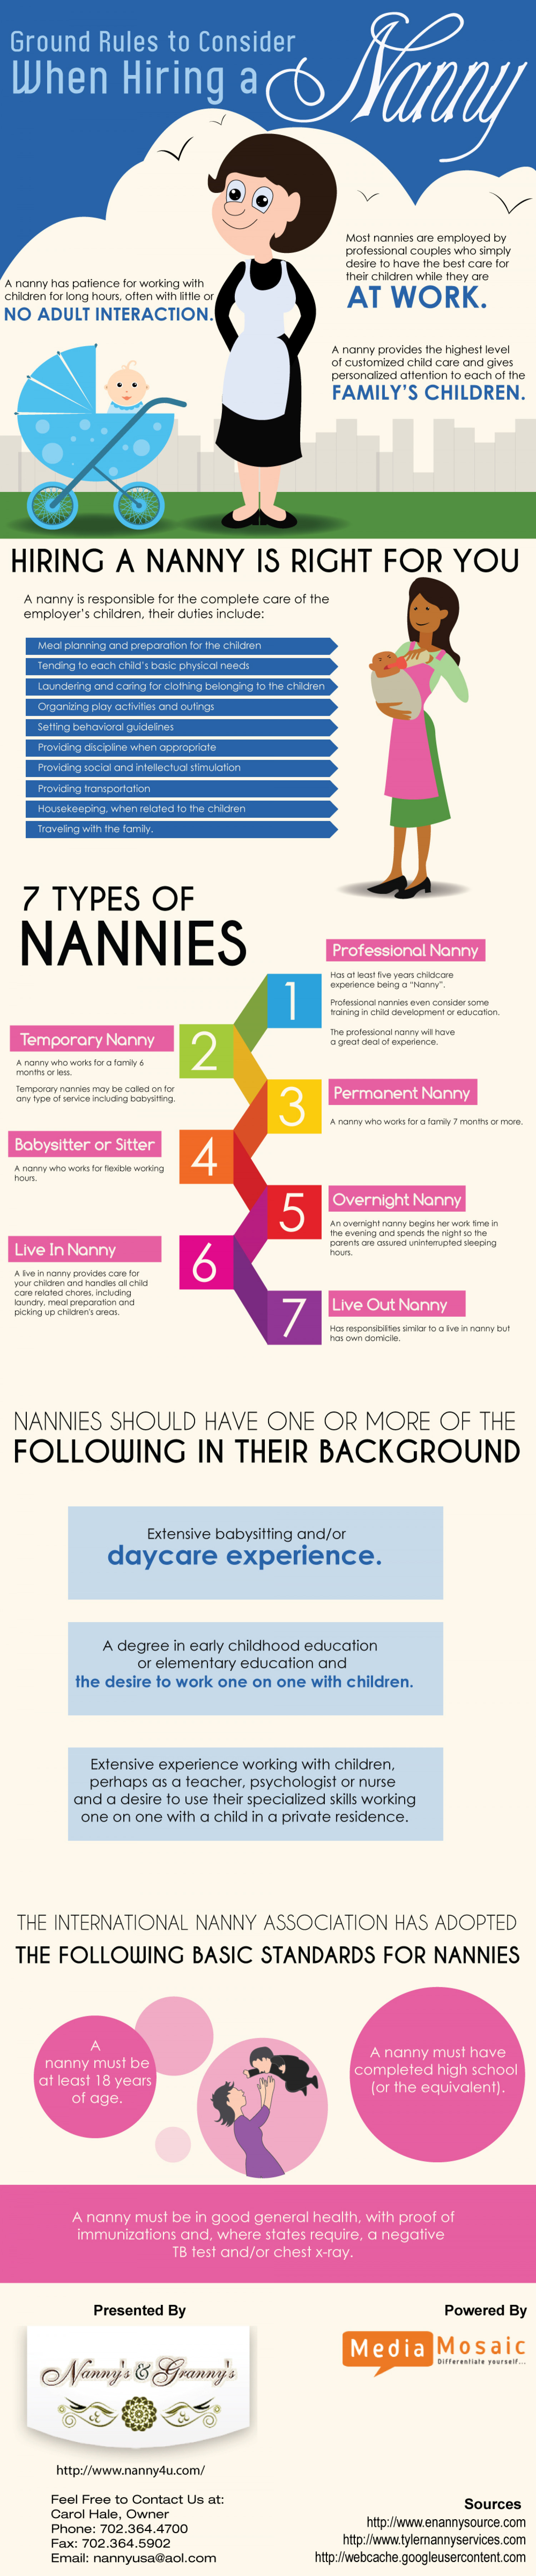 Ground Rules to Consider When Hiring a Nanny Infographic